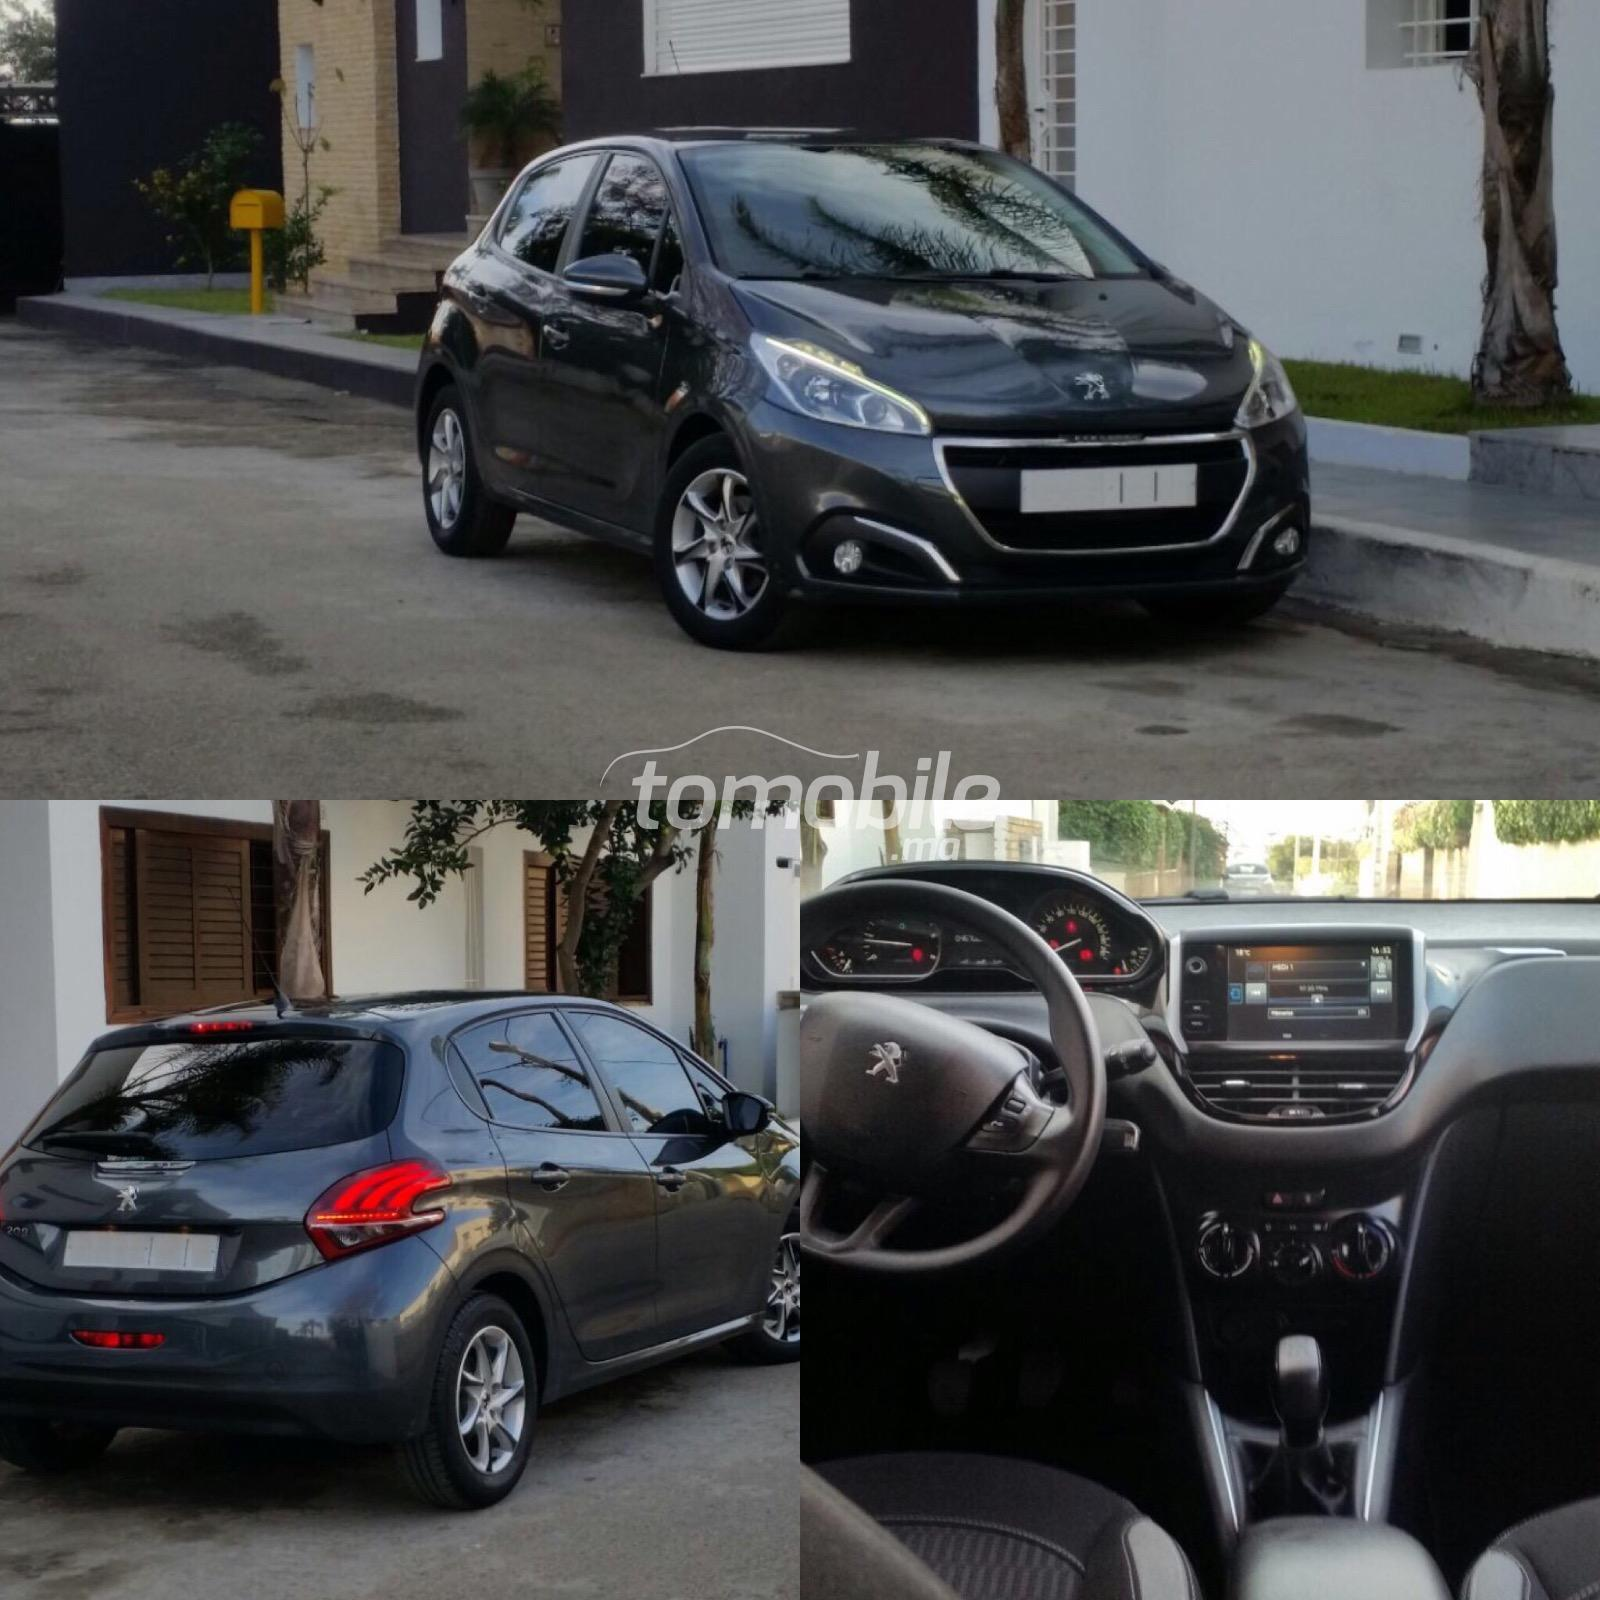 peugeot 208 diesel 2015 occasion 46000km rabat 55521. Black Bedroom Furniture Sets. Home Design Ideas